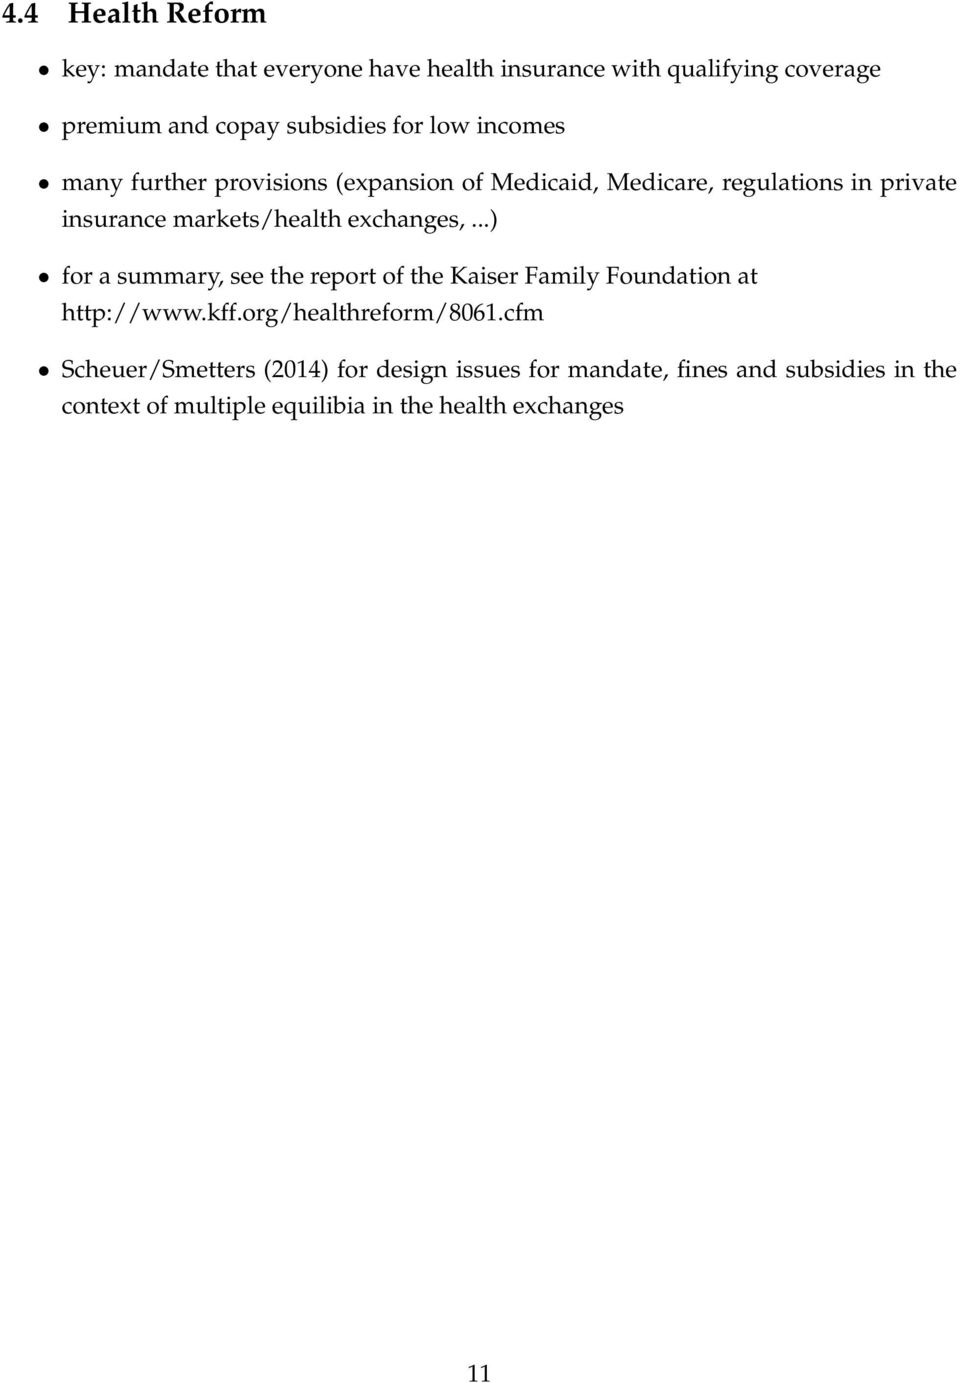 exchanges,...) for a summary, see the report of the Kaiser Family Foundation at http://www.kff.org/healthreform/8061.